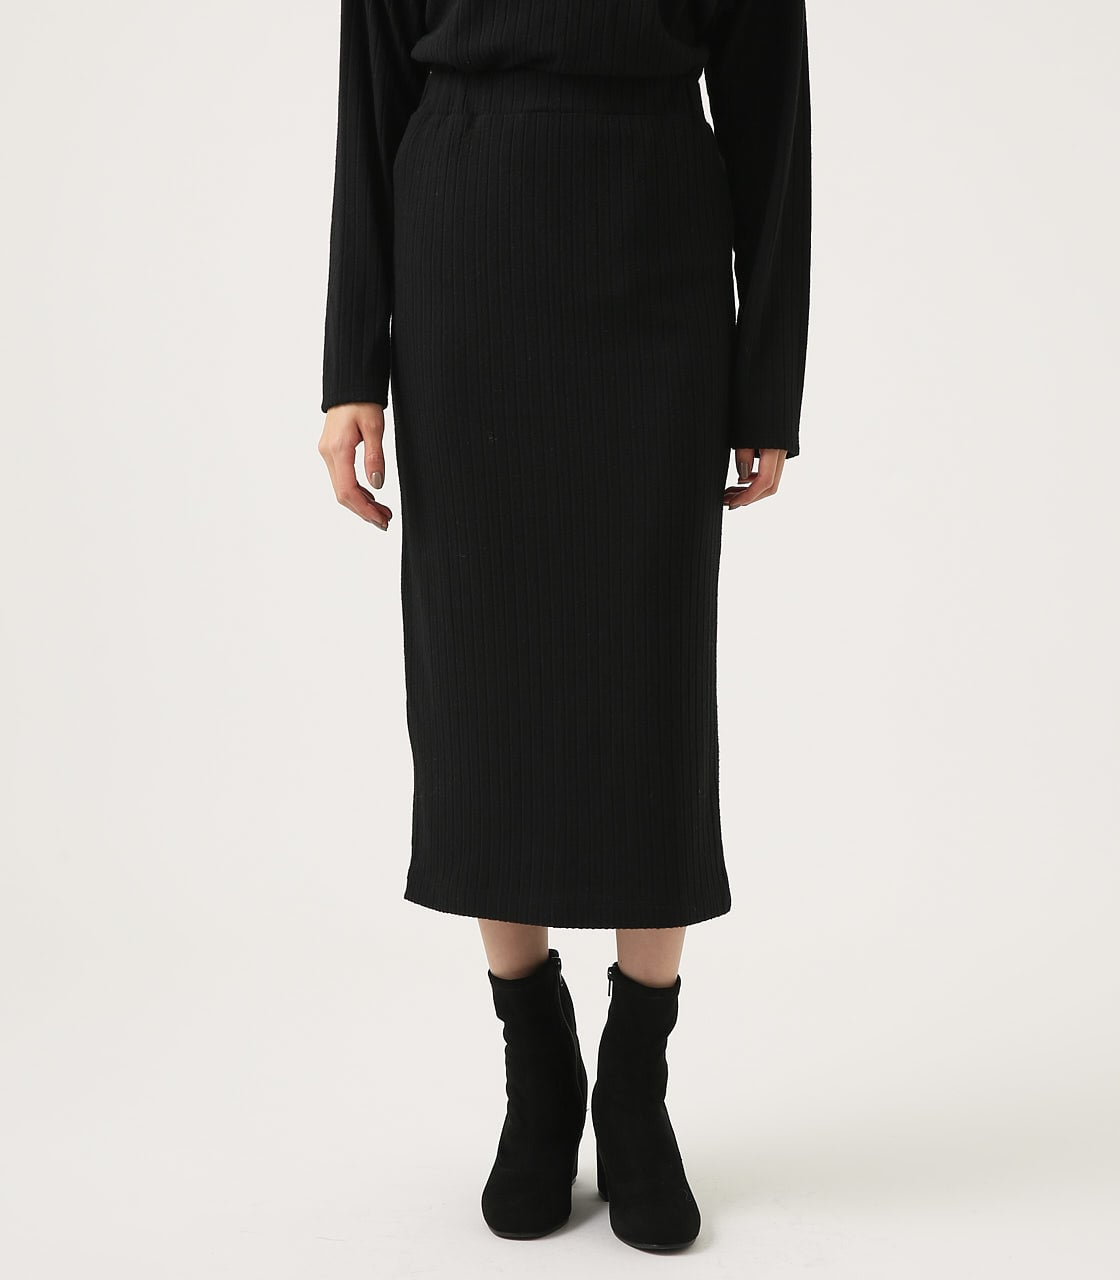 【AZUL BY MOUSSY】BLUSHED TIGHT MIDI SKIRT 詳細画像 BLK 5